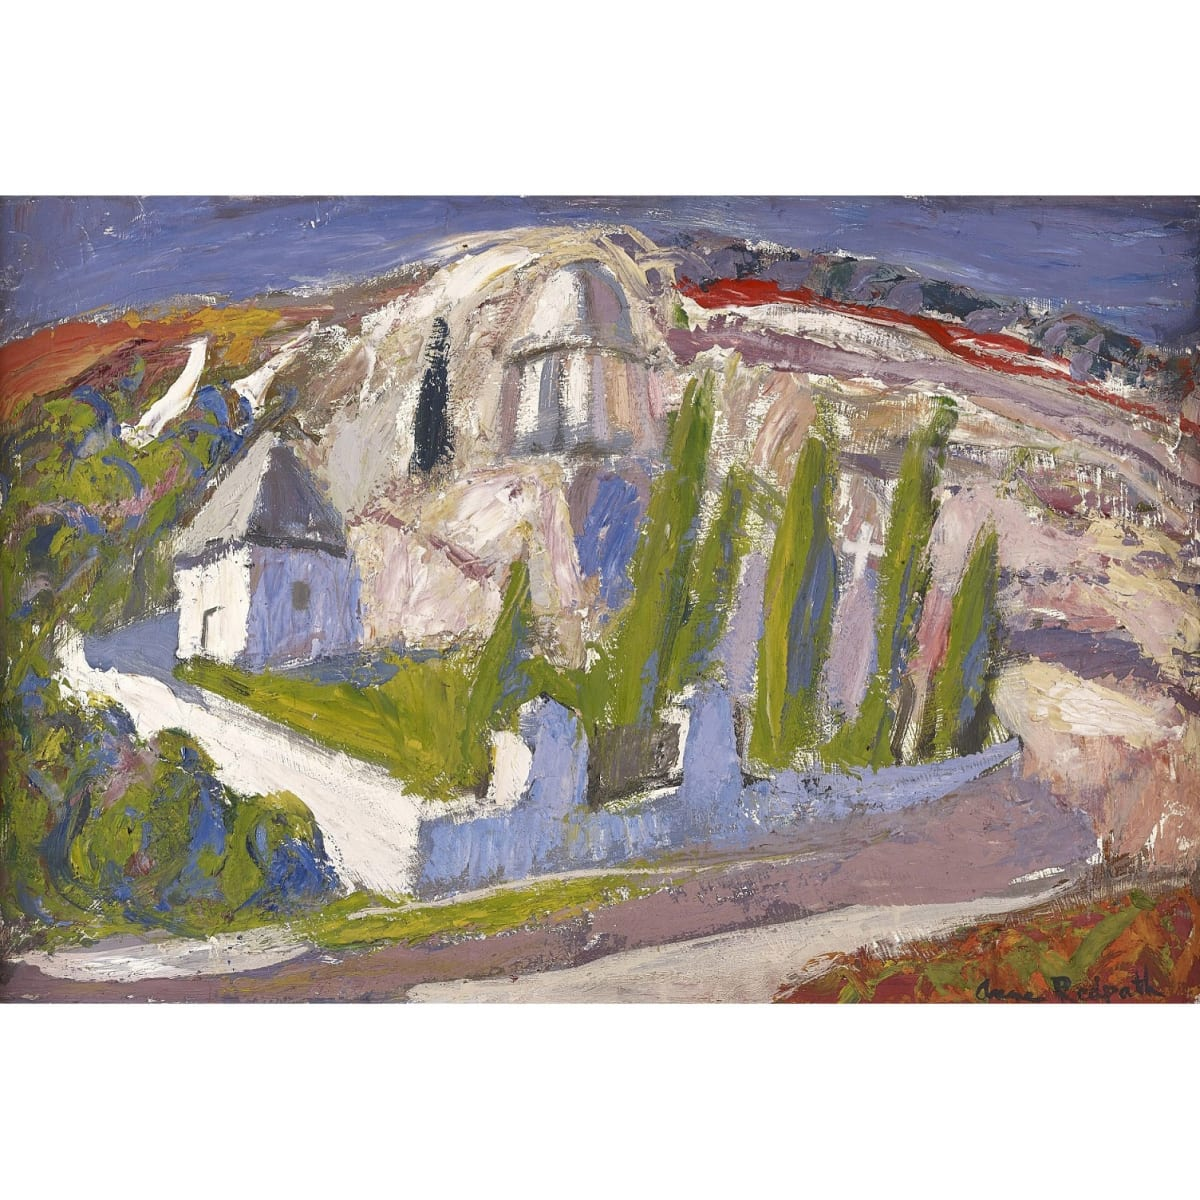 Anne Redpath Wayside cemetery, Corsica signed; titled on label verso oil on board 20 x 30 inches